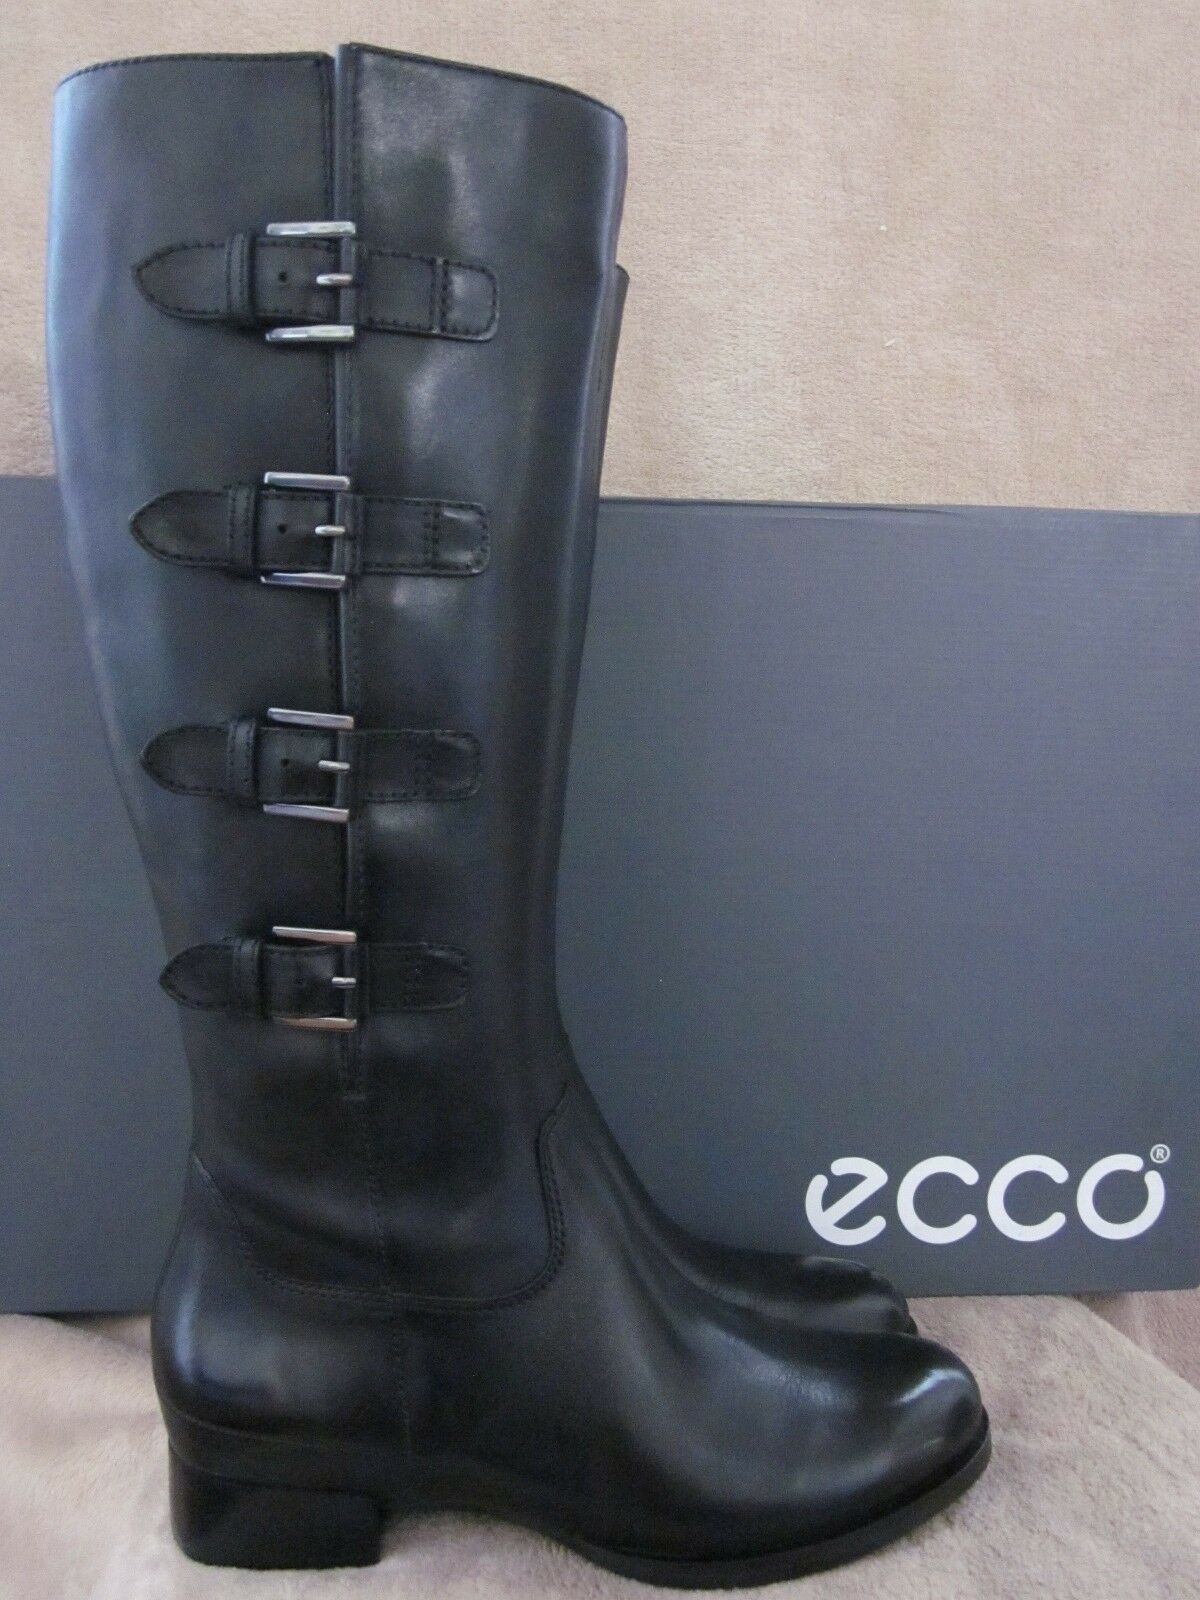 ECCO Sullivan Black High Cut Leather Buckle Boots shoes US 9 - 9.5 M EUR 40 NWB